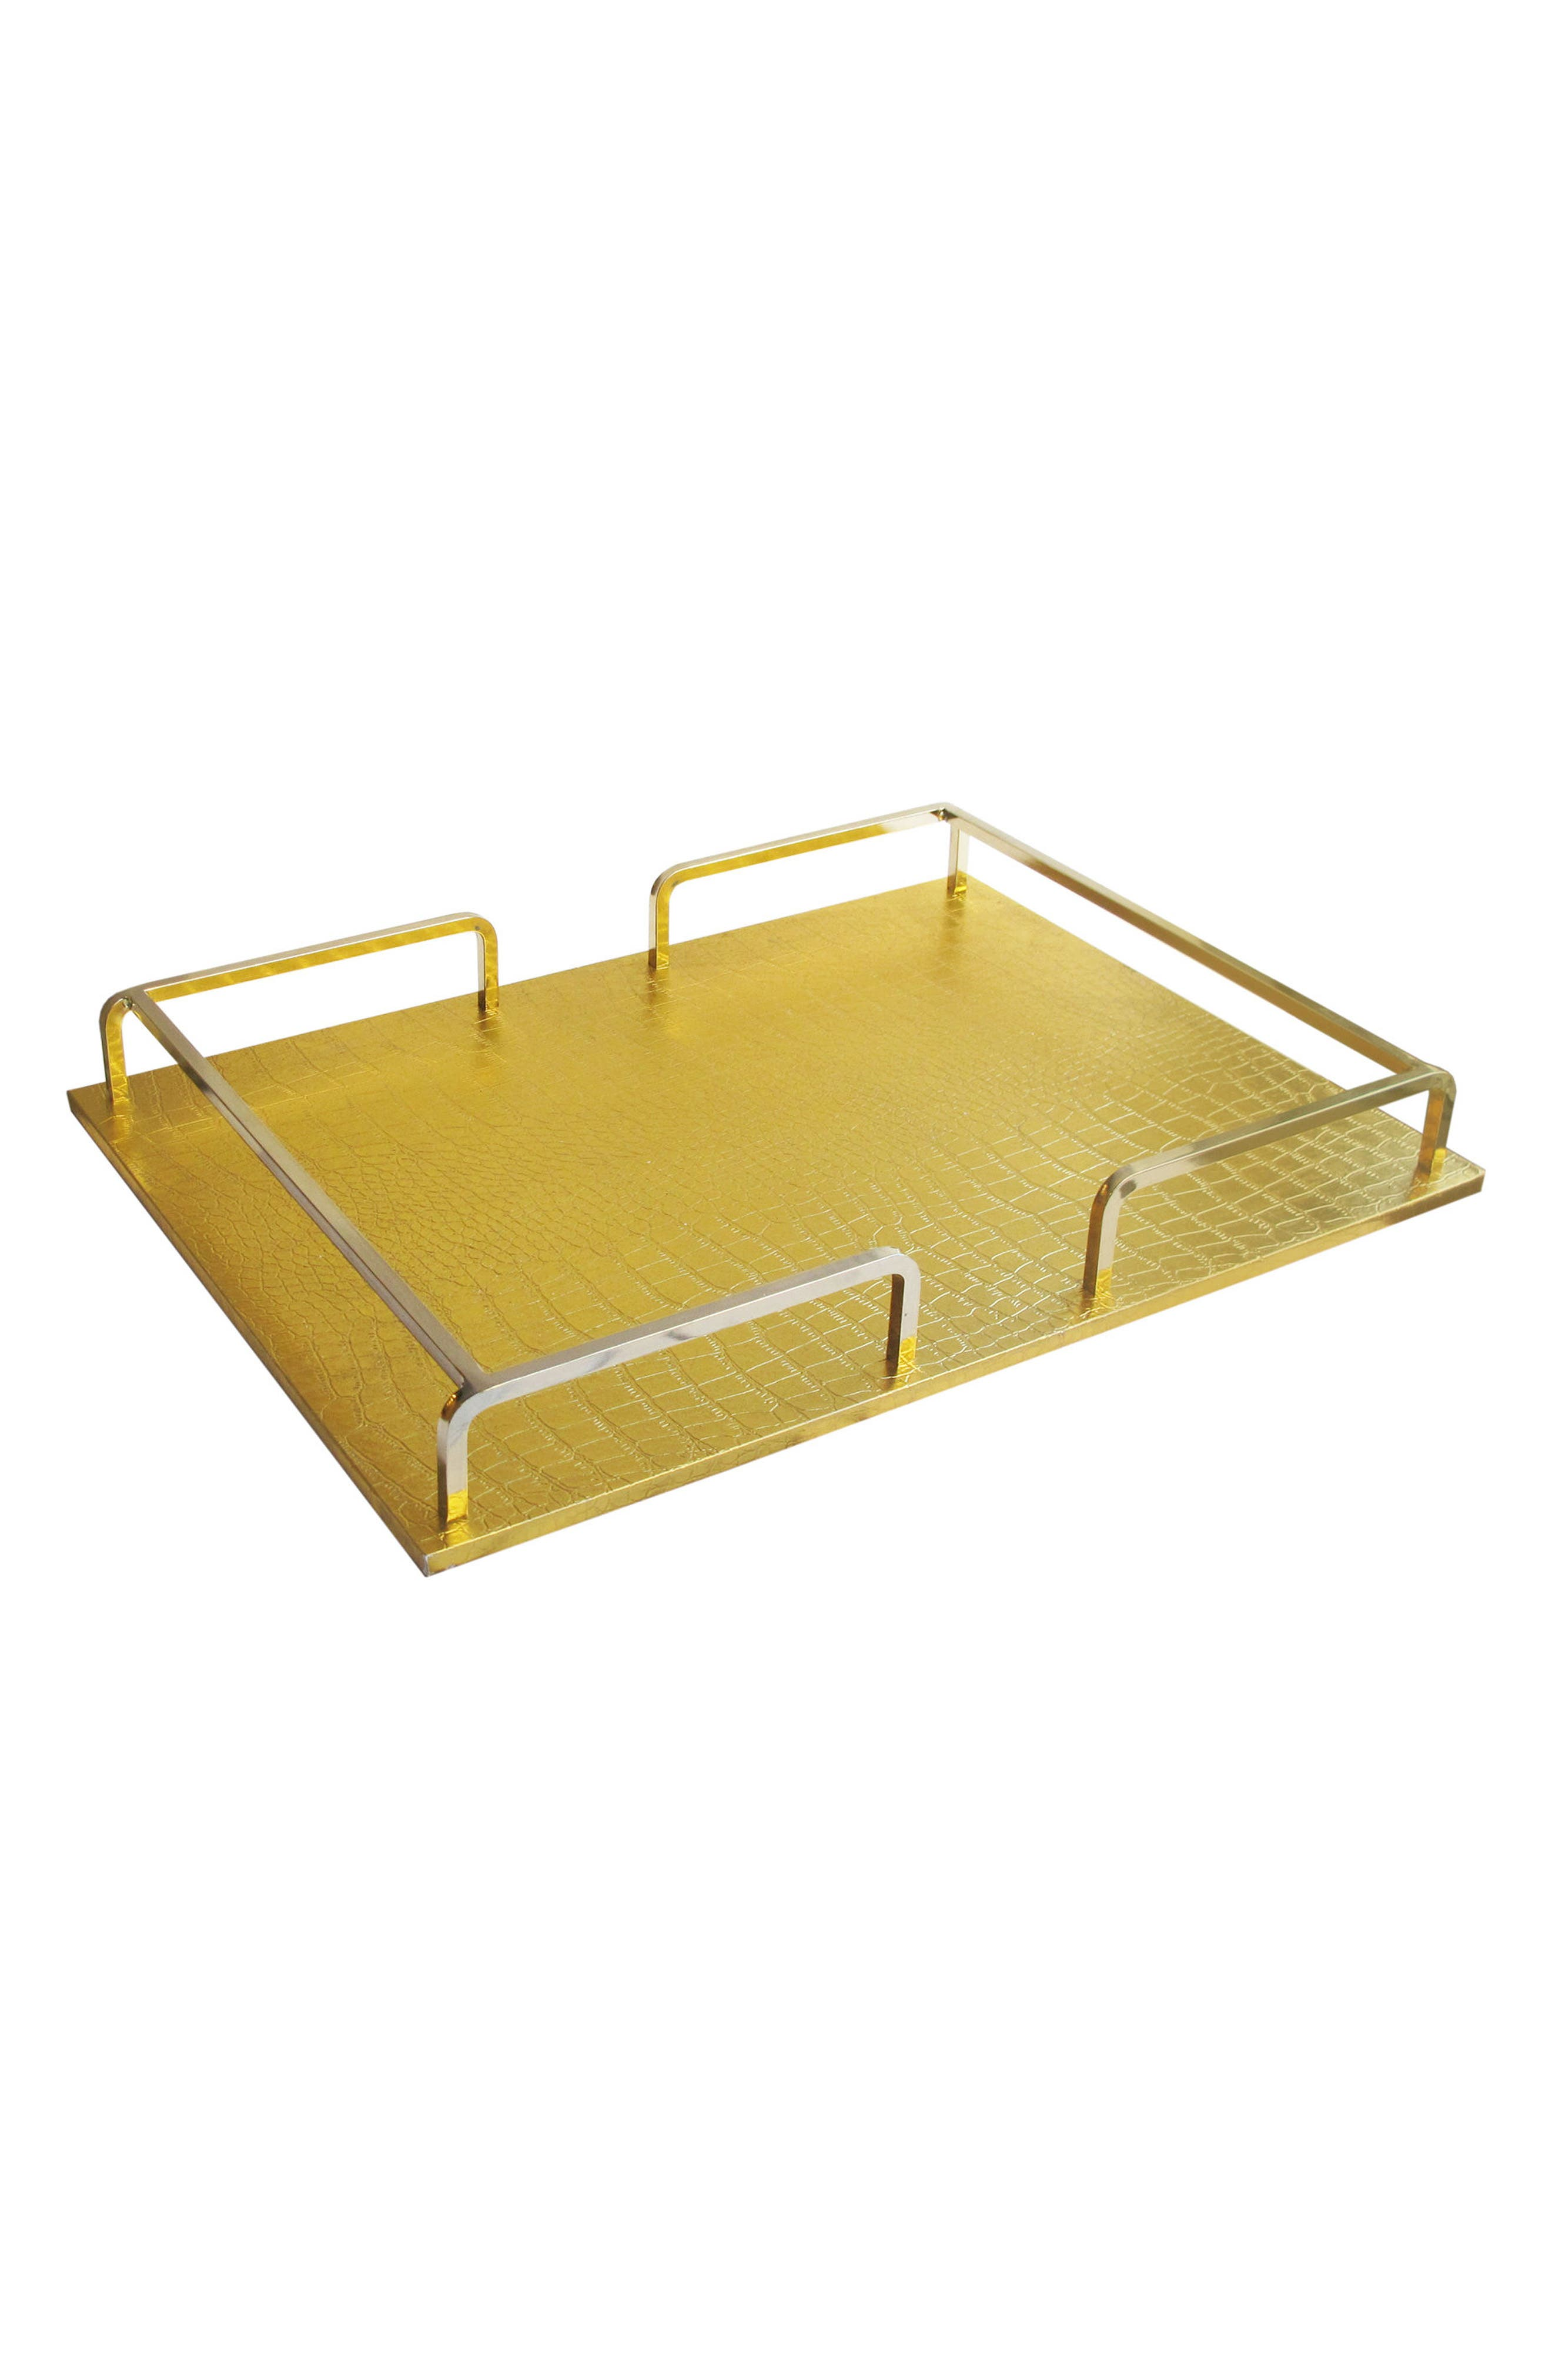 Croc-Embossed Serving Tray,                         Main,                         color, Gold